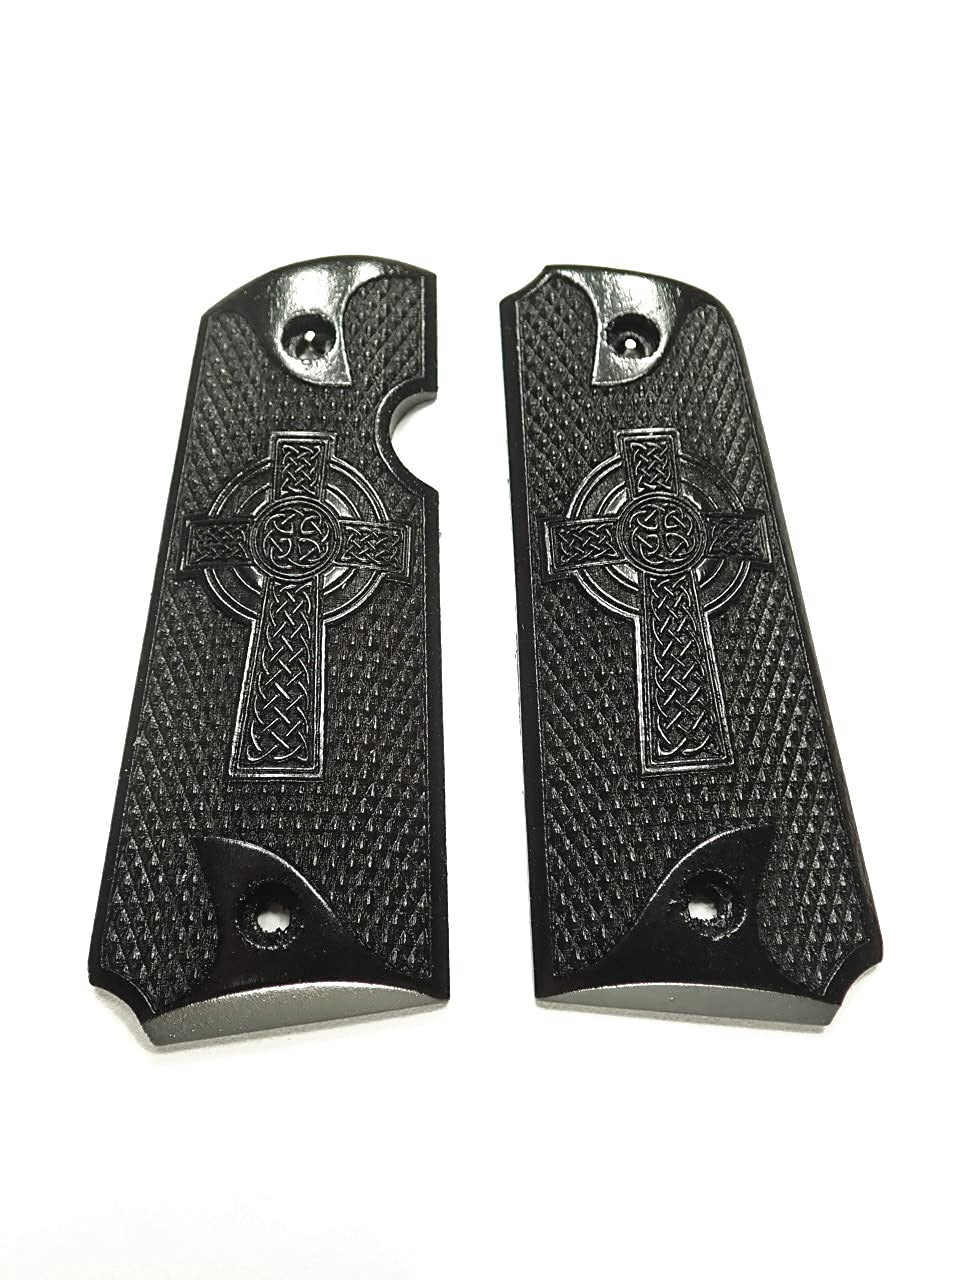 Celtic Cross Ebony Rock Quantity limited Island Grips Store 380 Textured Engraved 1911